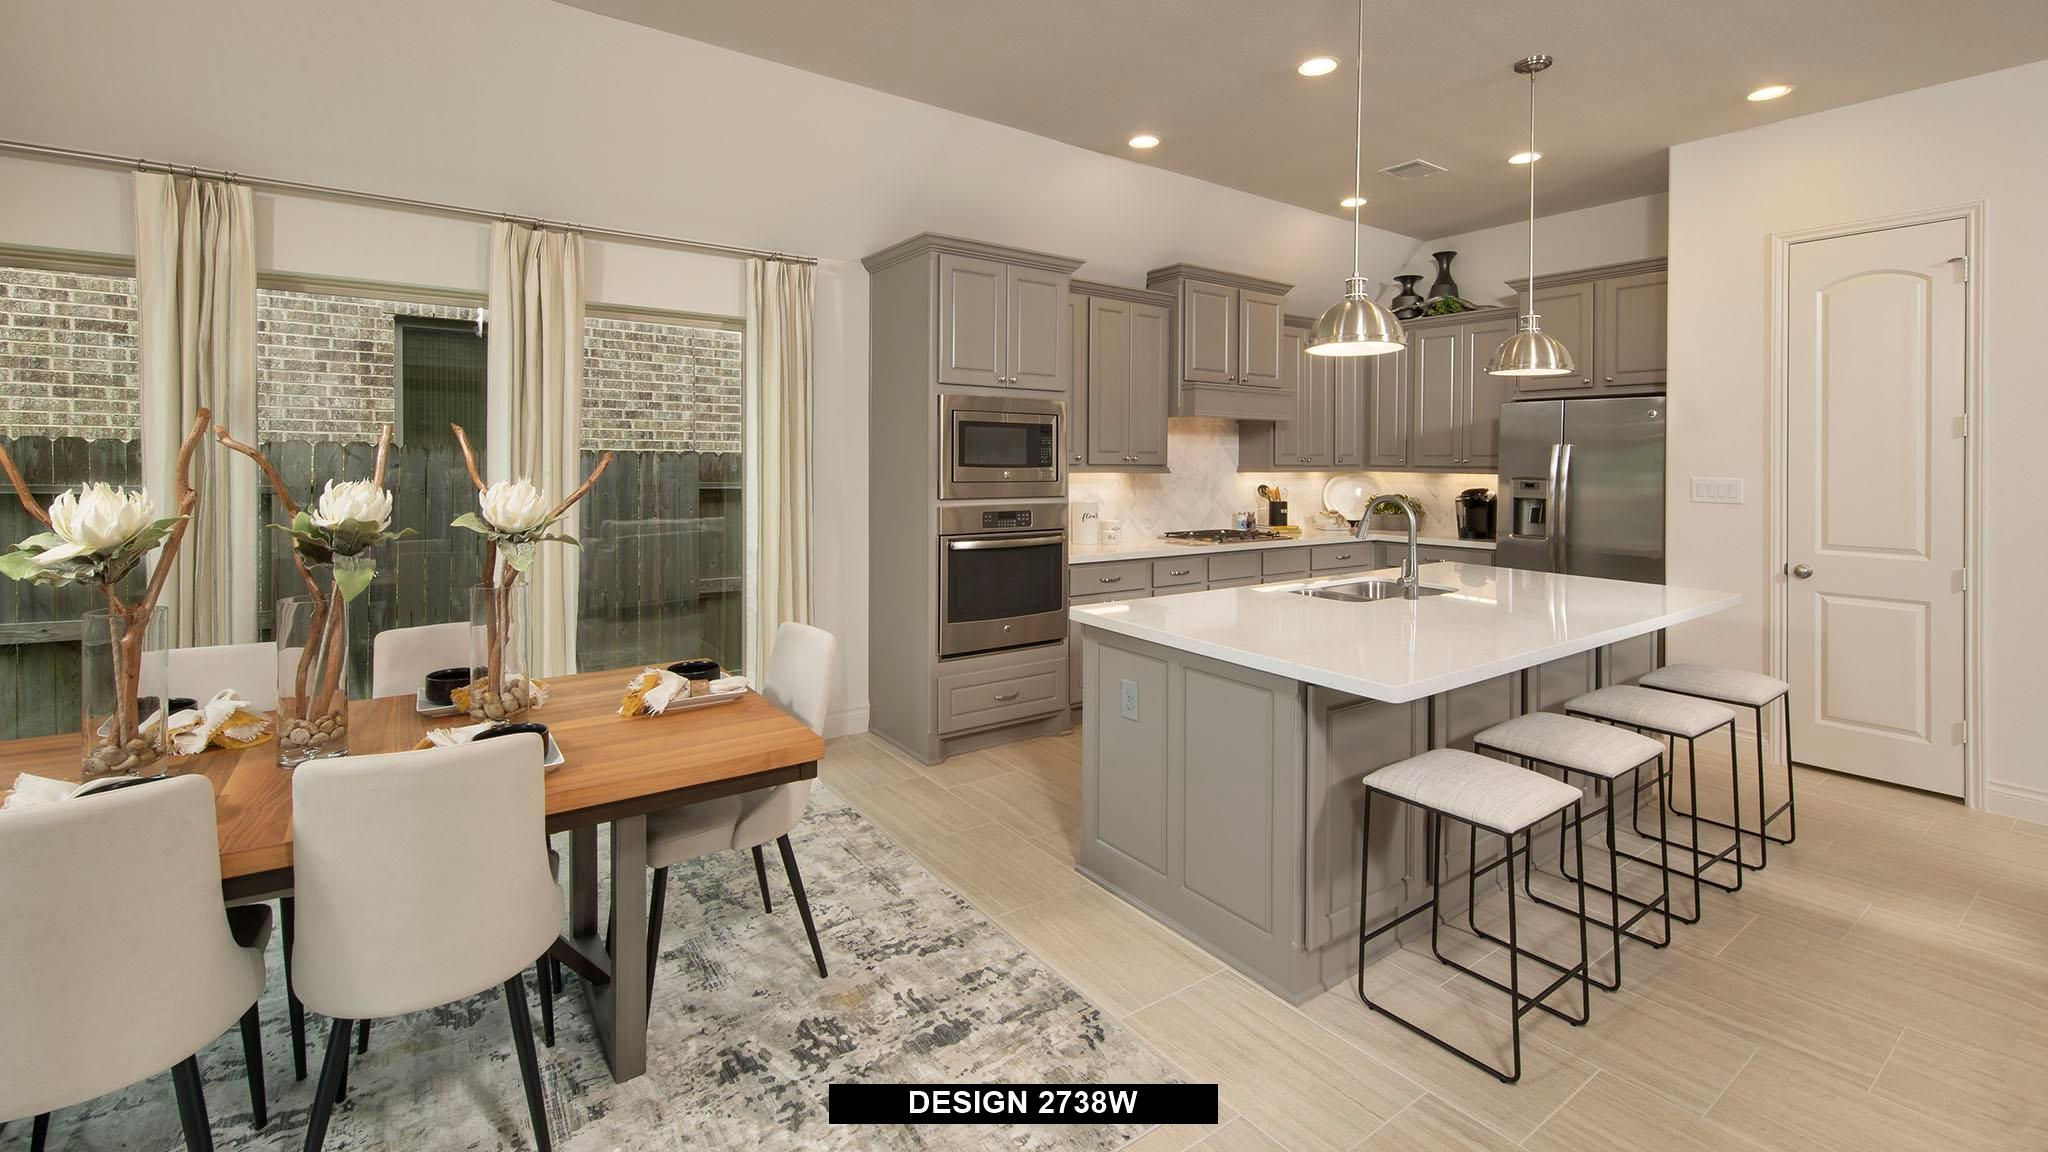 Kitchen featured in the 2738W By Perry Homes in San Antonio, TX